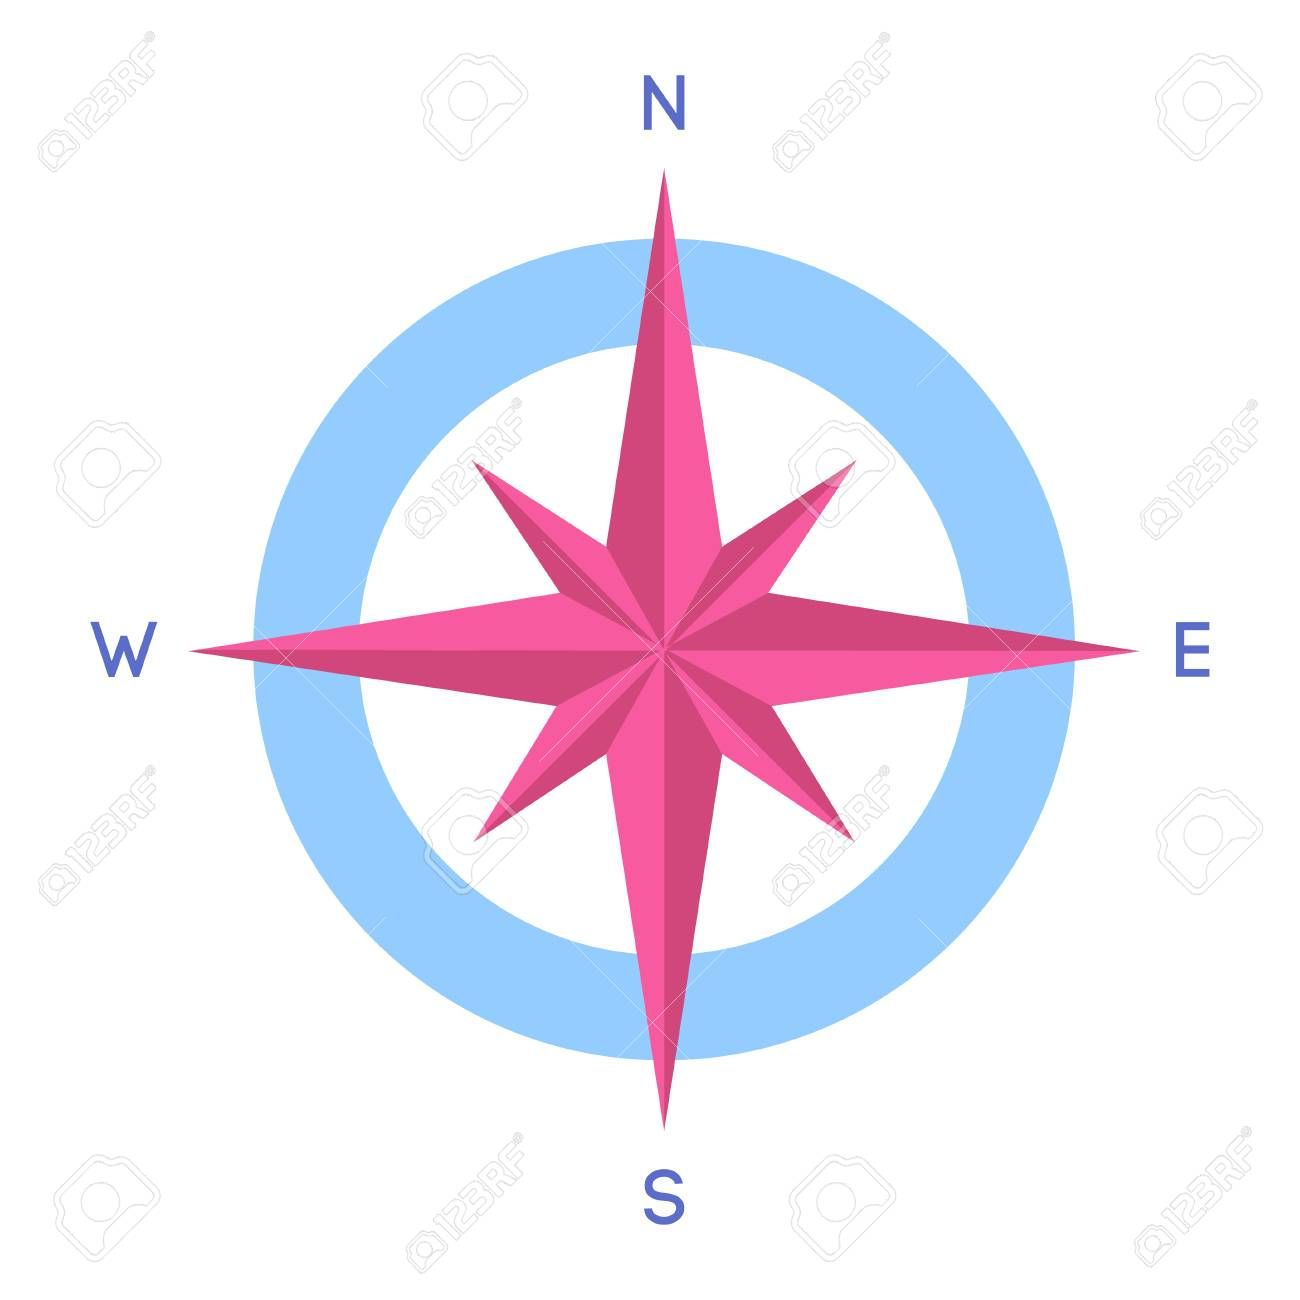 Compass Icon Compass With North South East And West Indicated